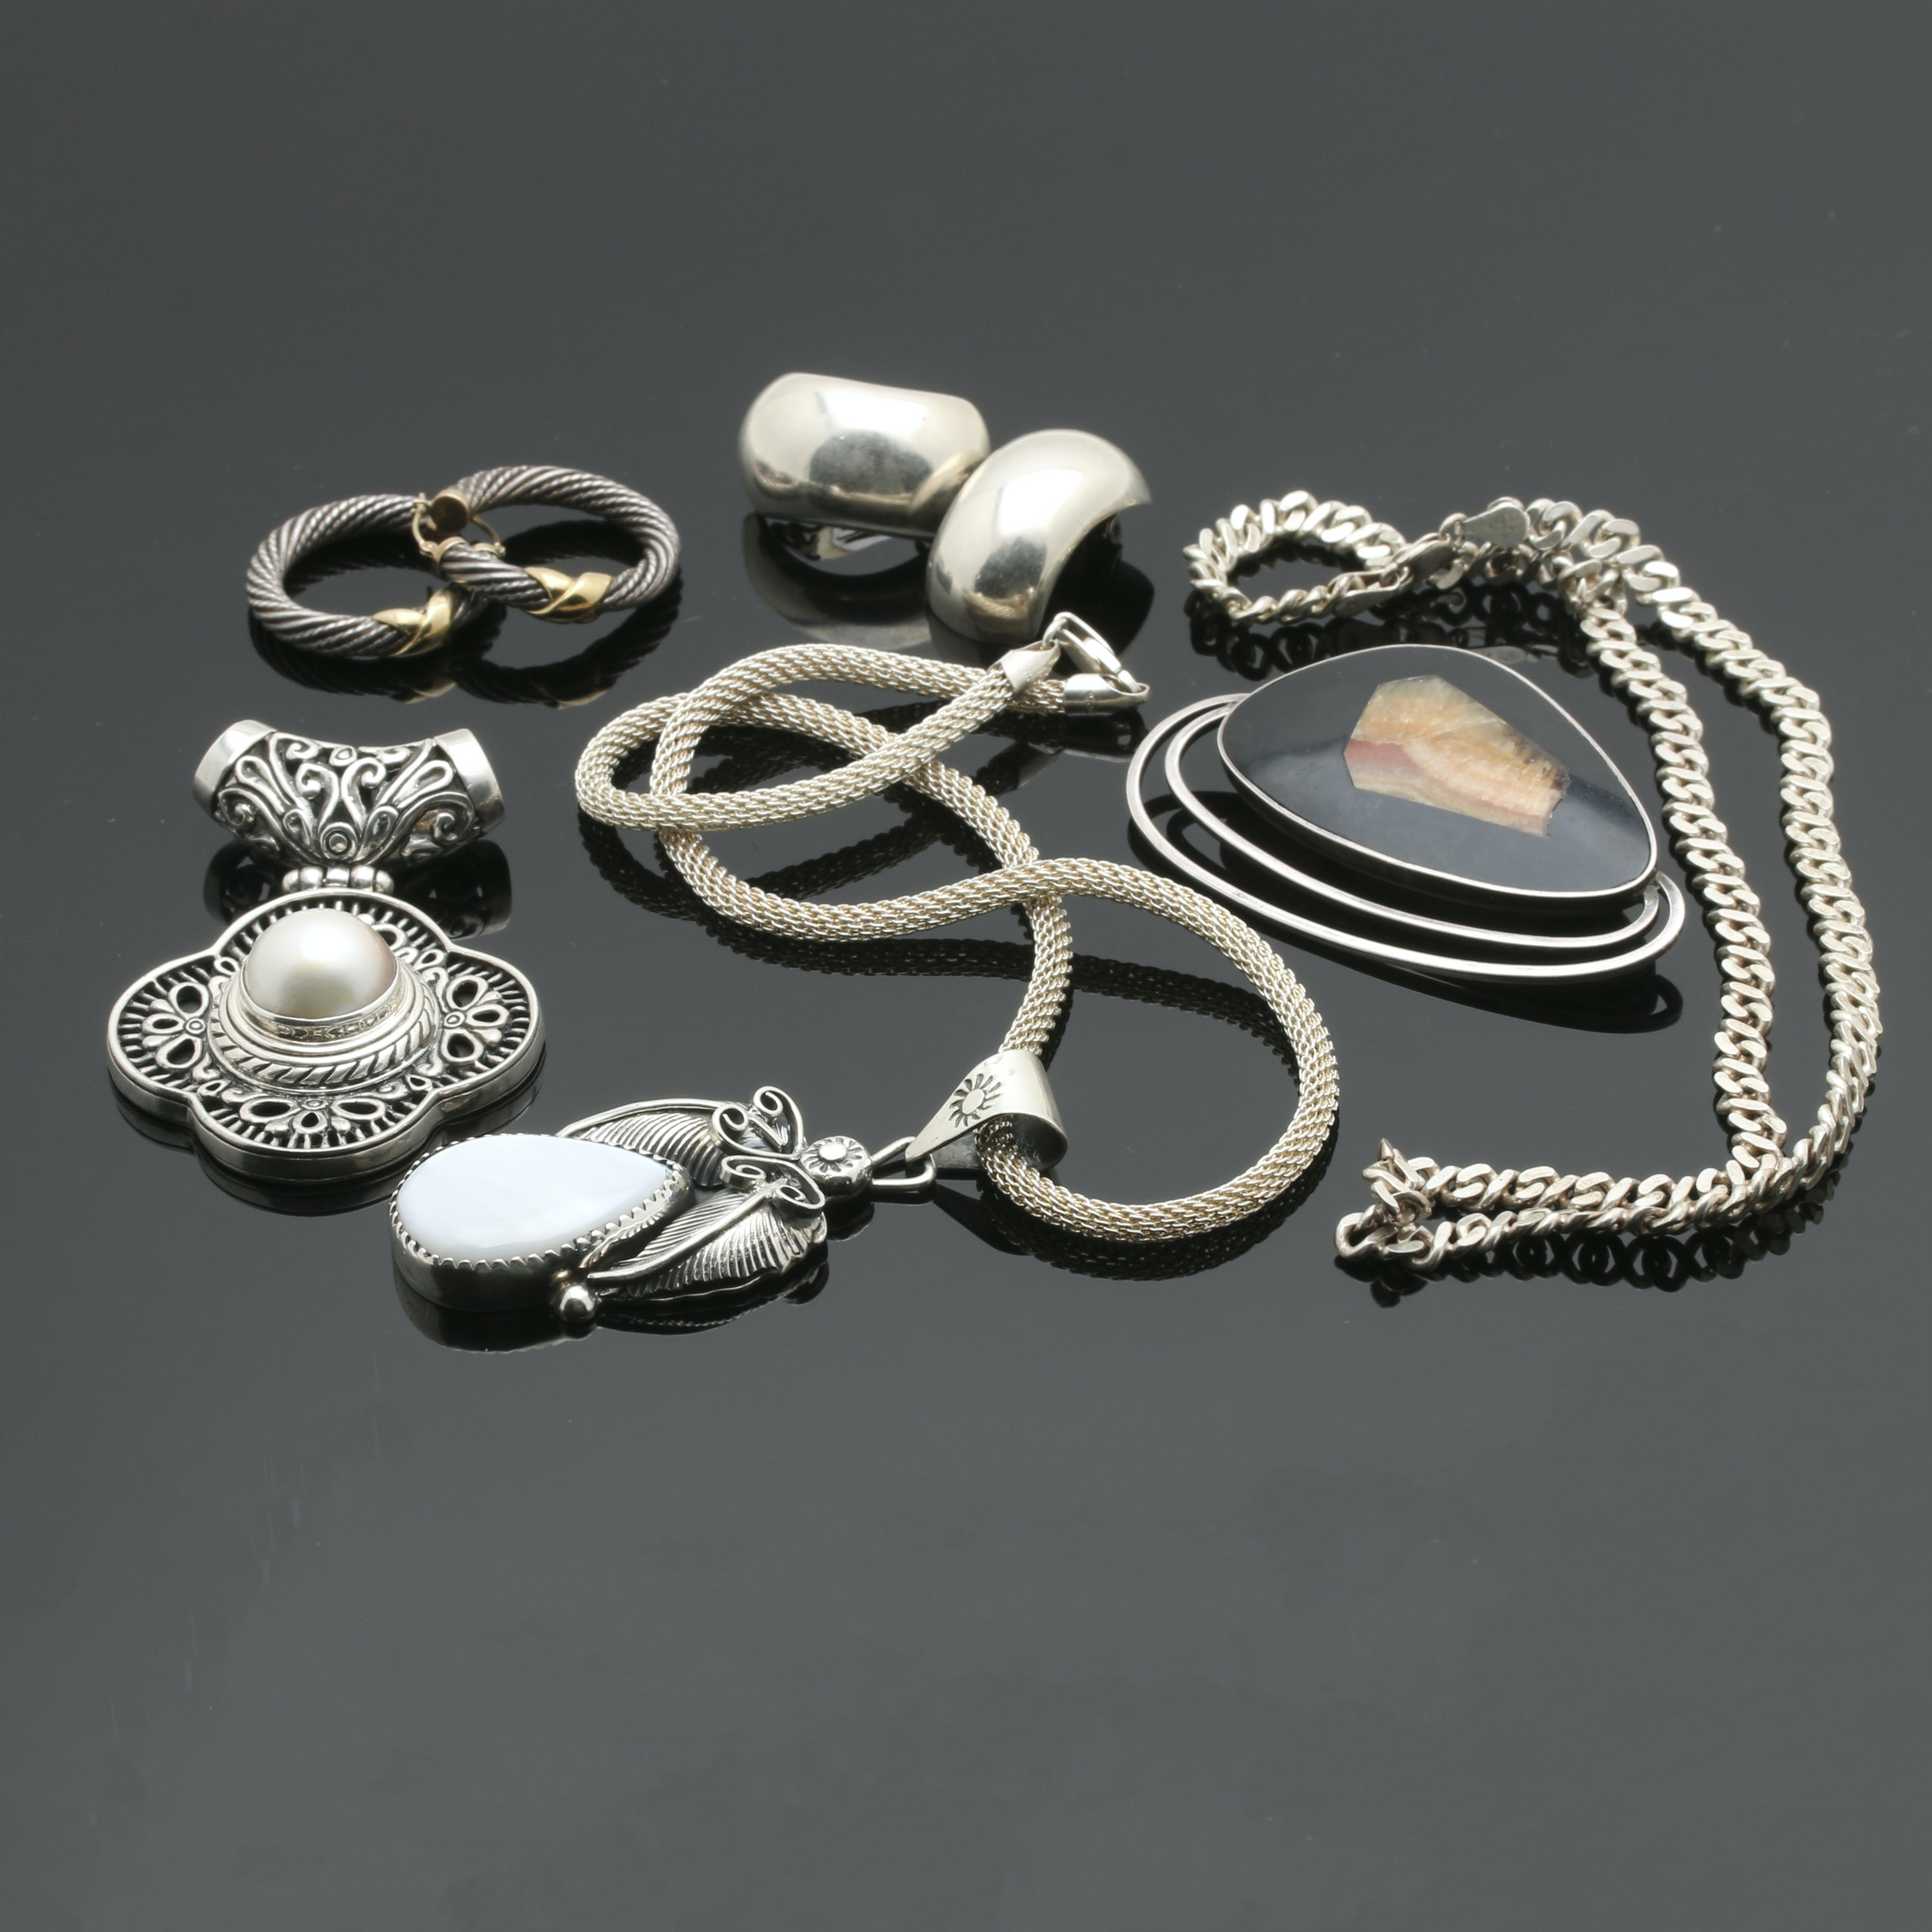 Assortment of Sterling Silver Jewelry Featuring Mother of Pearl, Mabe Pearl and Agate